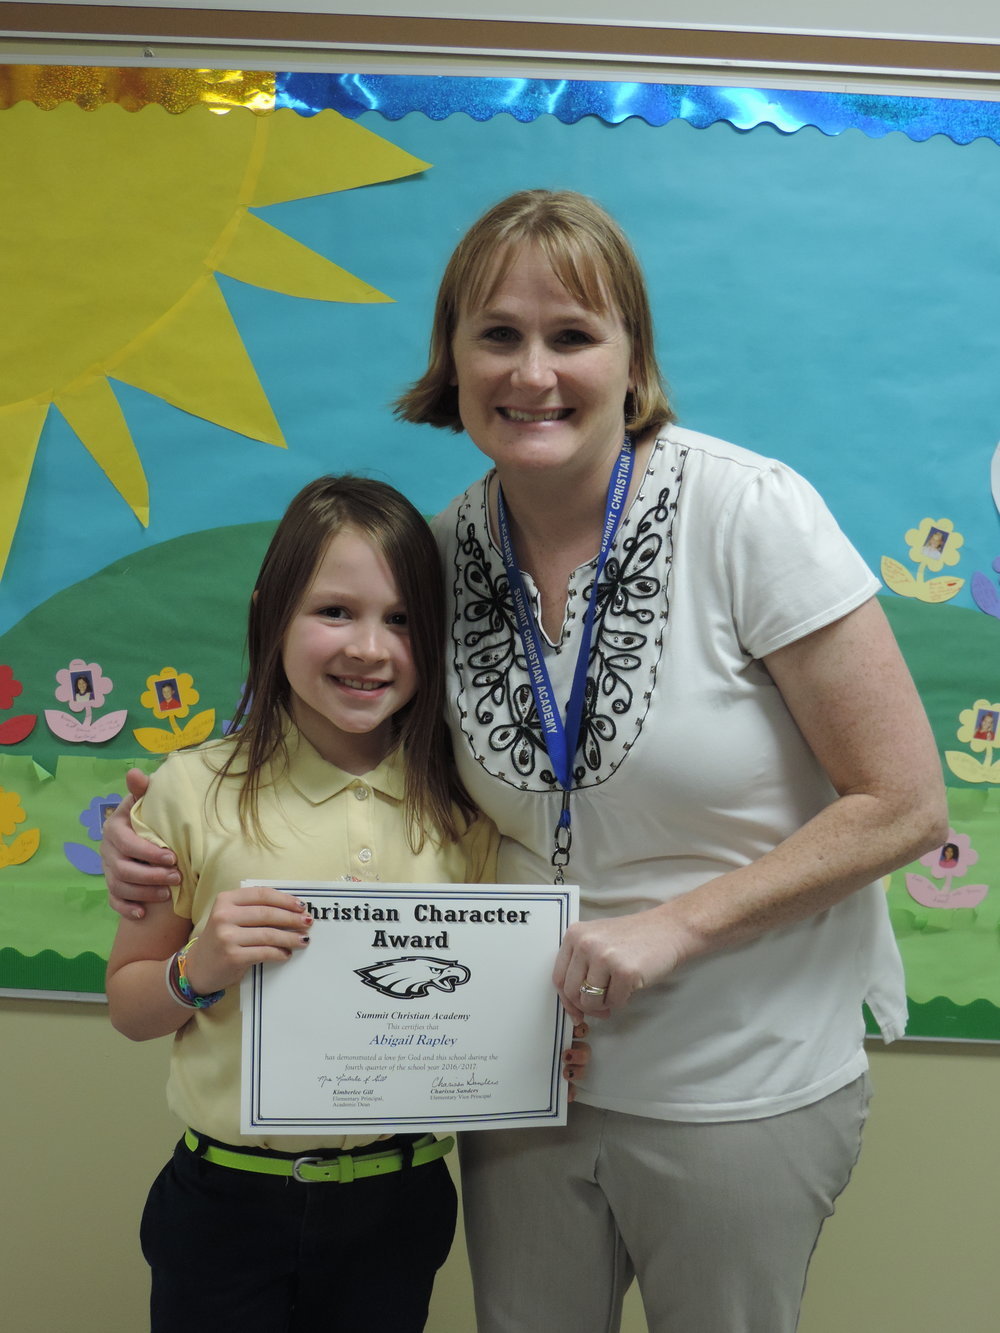 SCA second grade student Abbey Rapley, pictured with SCA Elementary Vice-Principal Charissa Sanders, received an elementary Christian Character Award for fourth quarter.